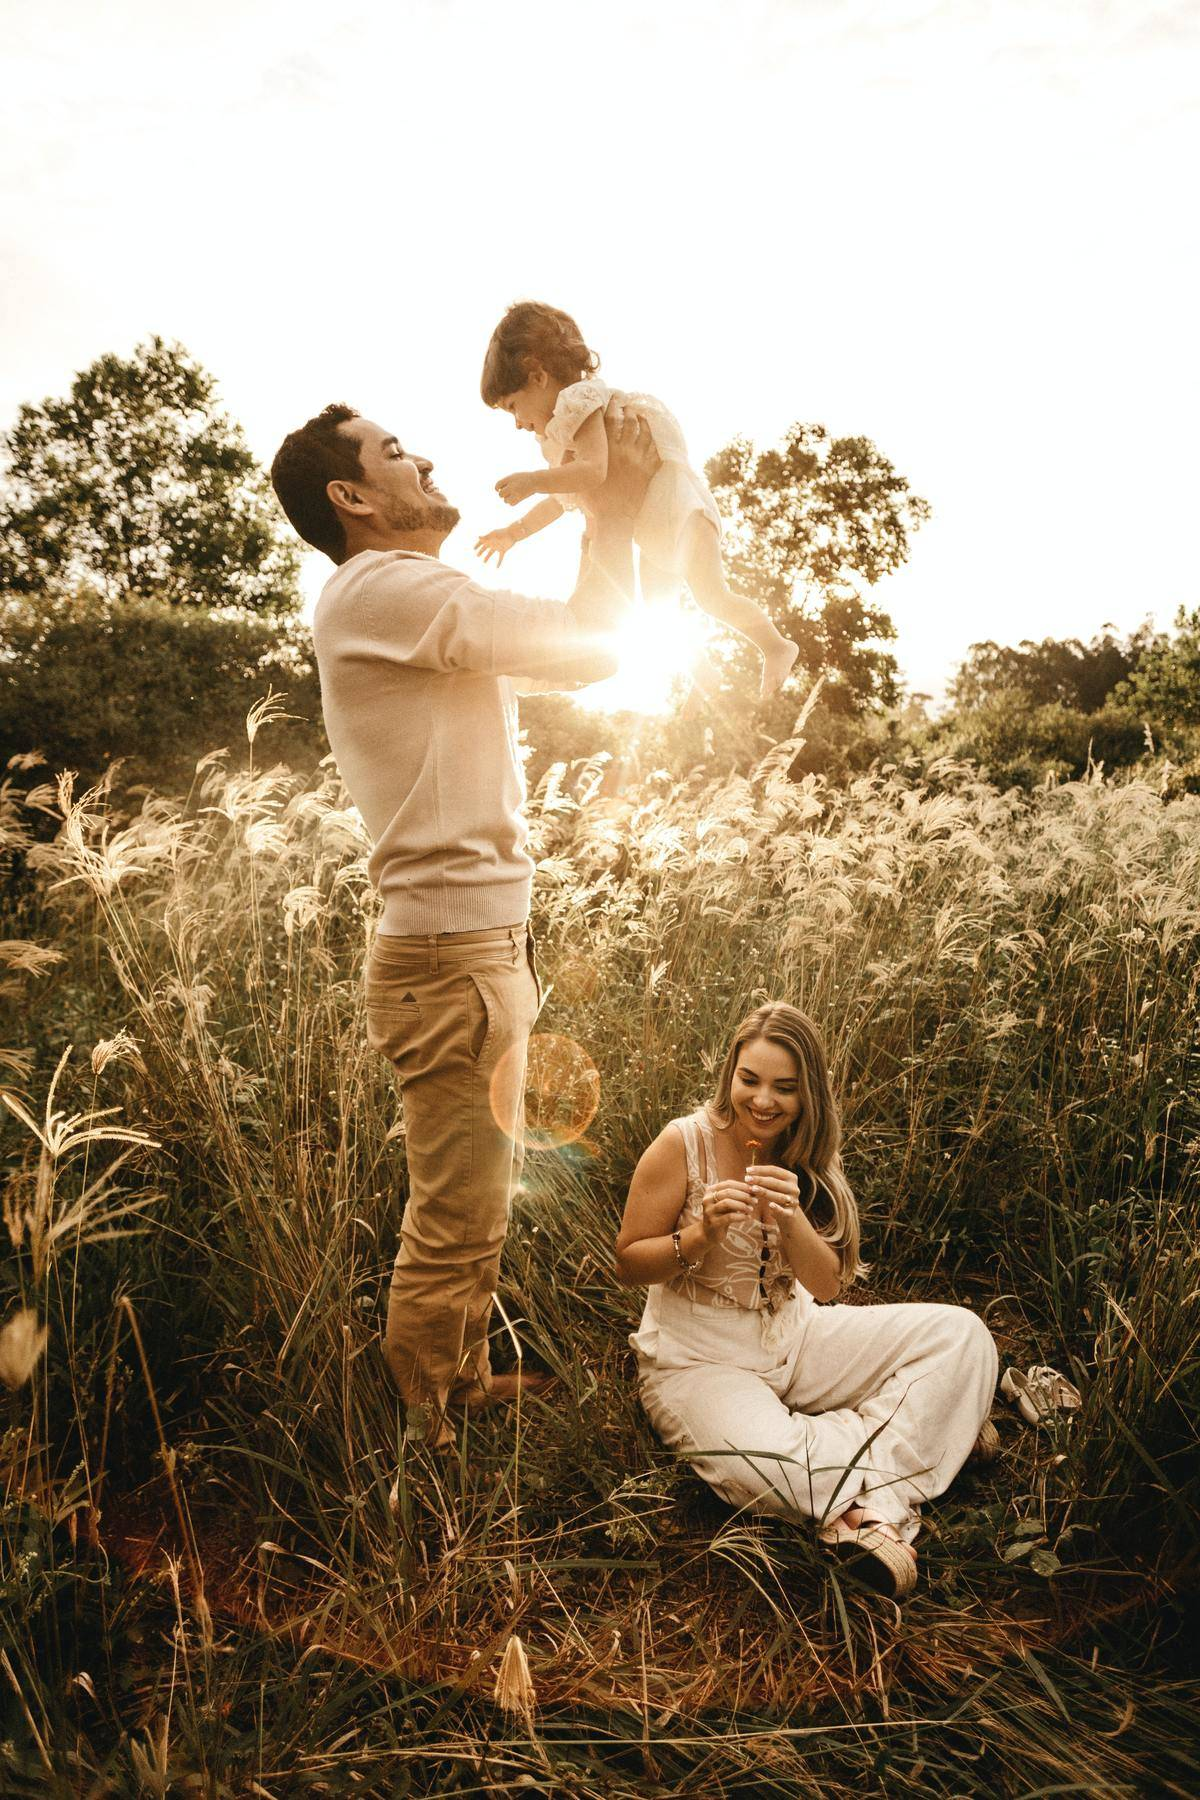 man playing with baby in a field with woman sitting on ground